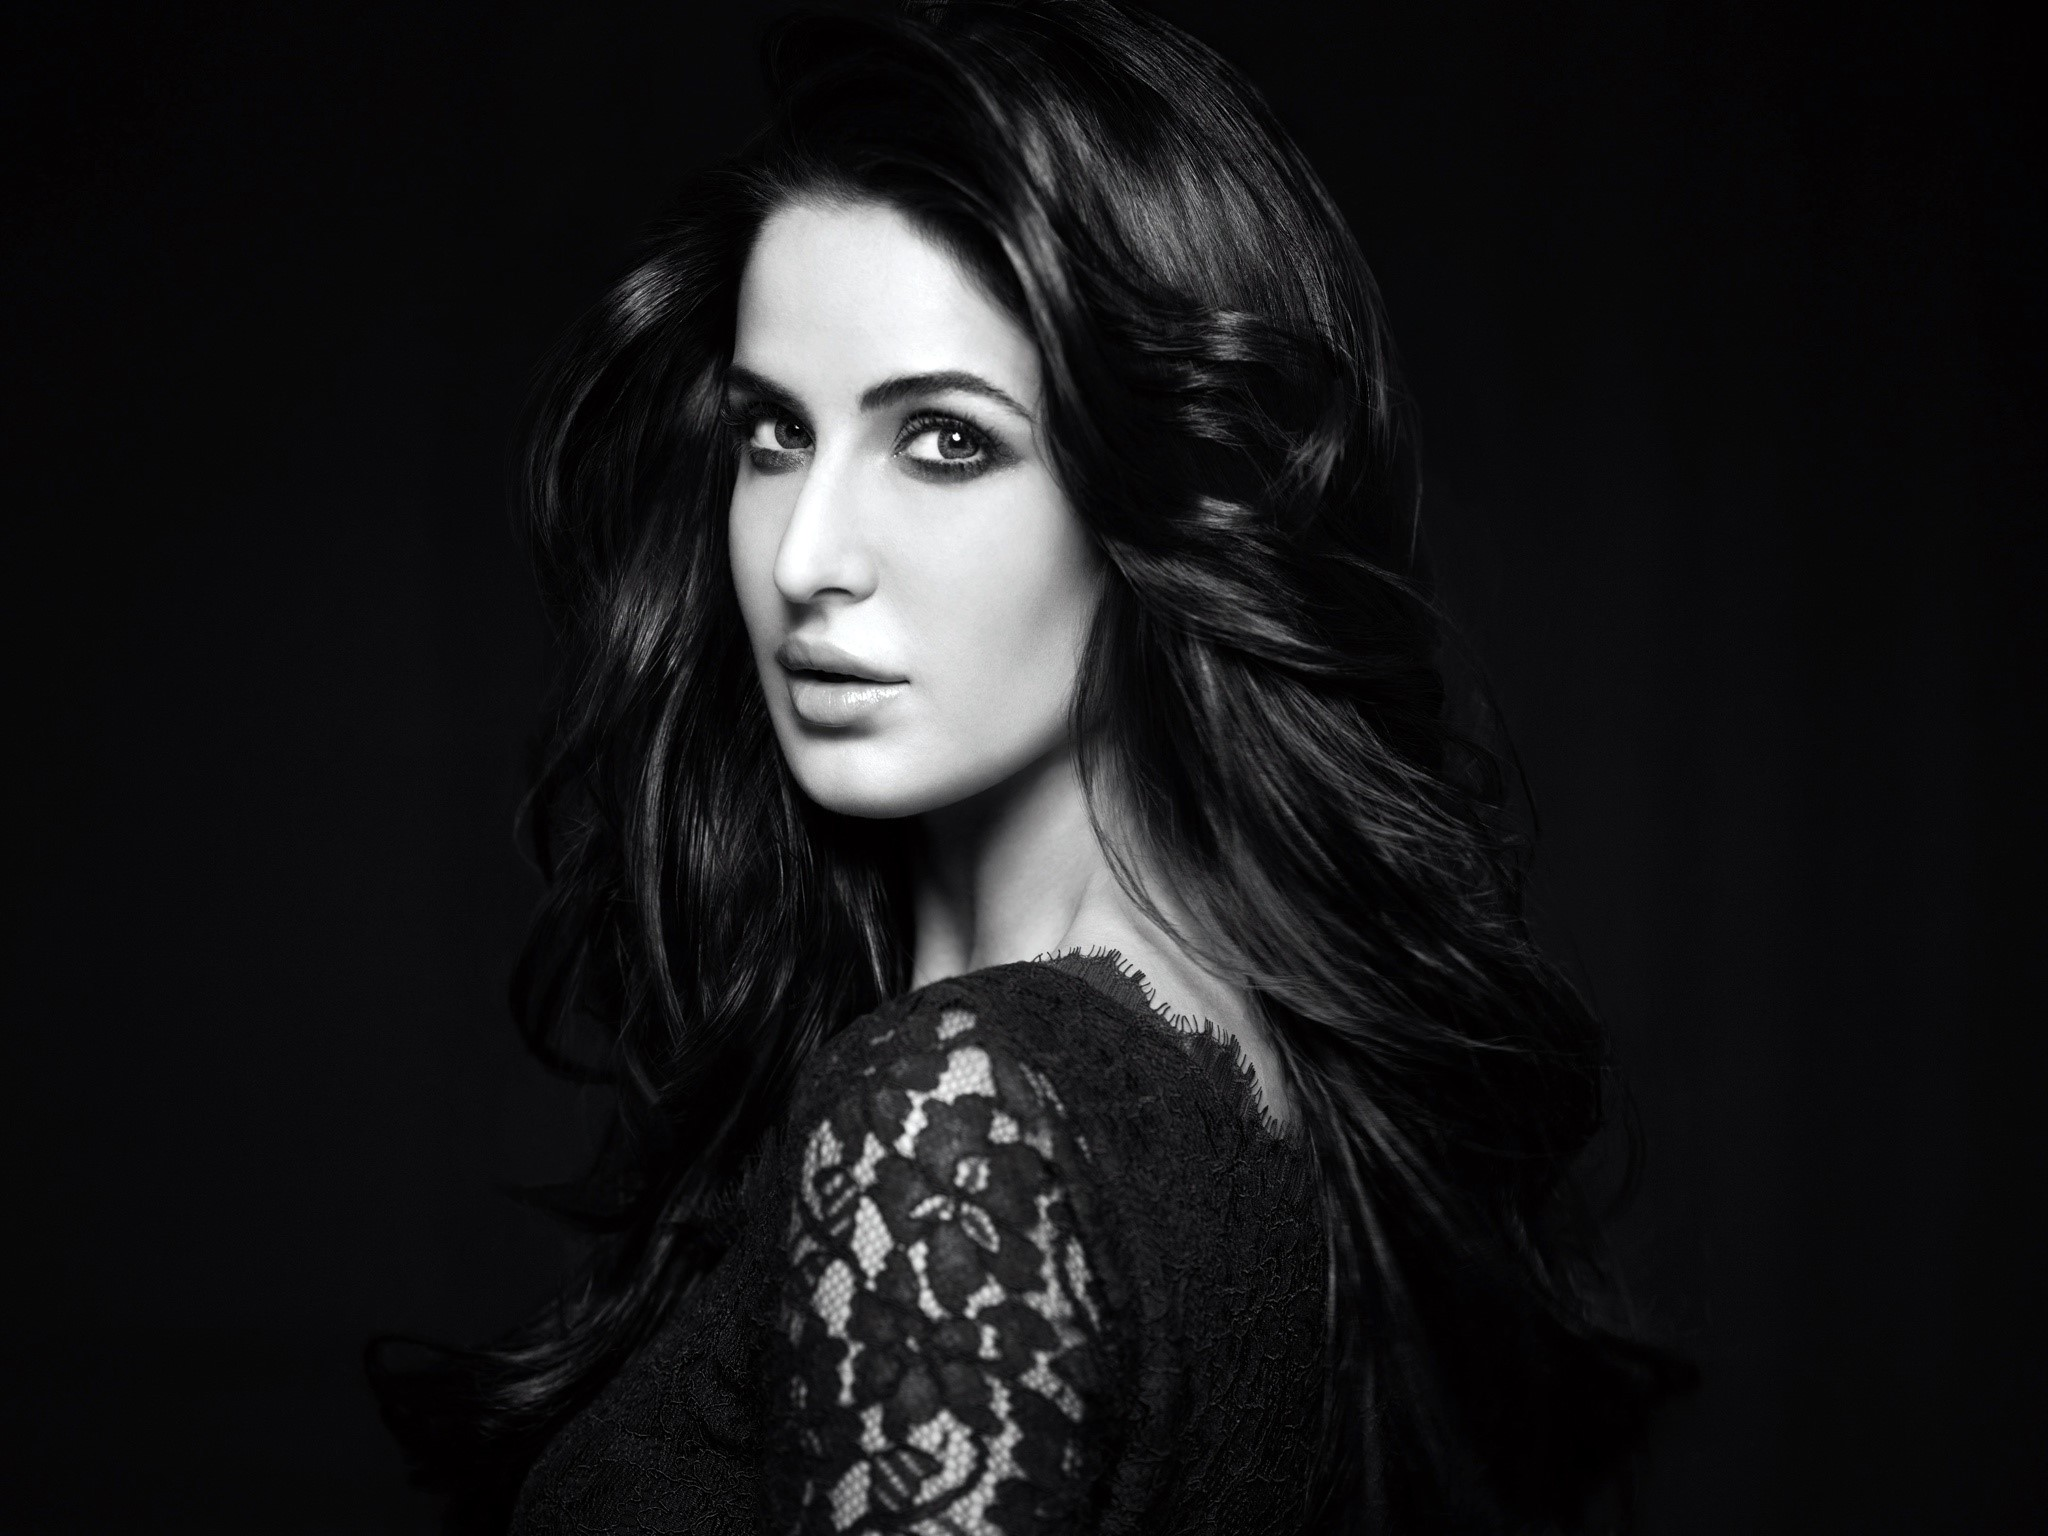 Wallpaper Katrina Kaif